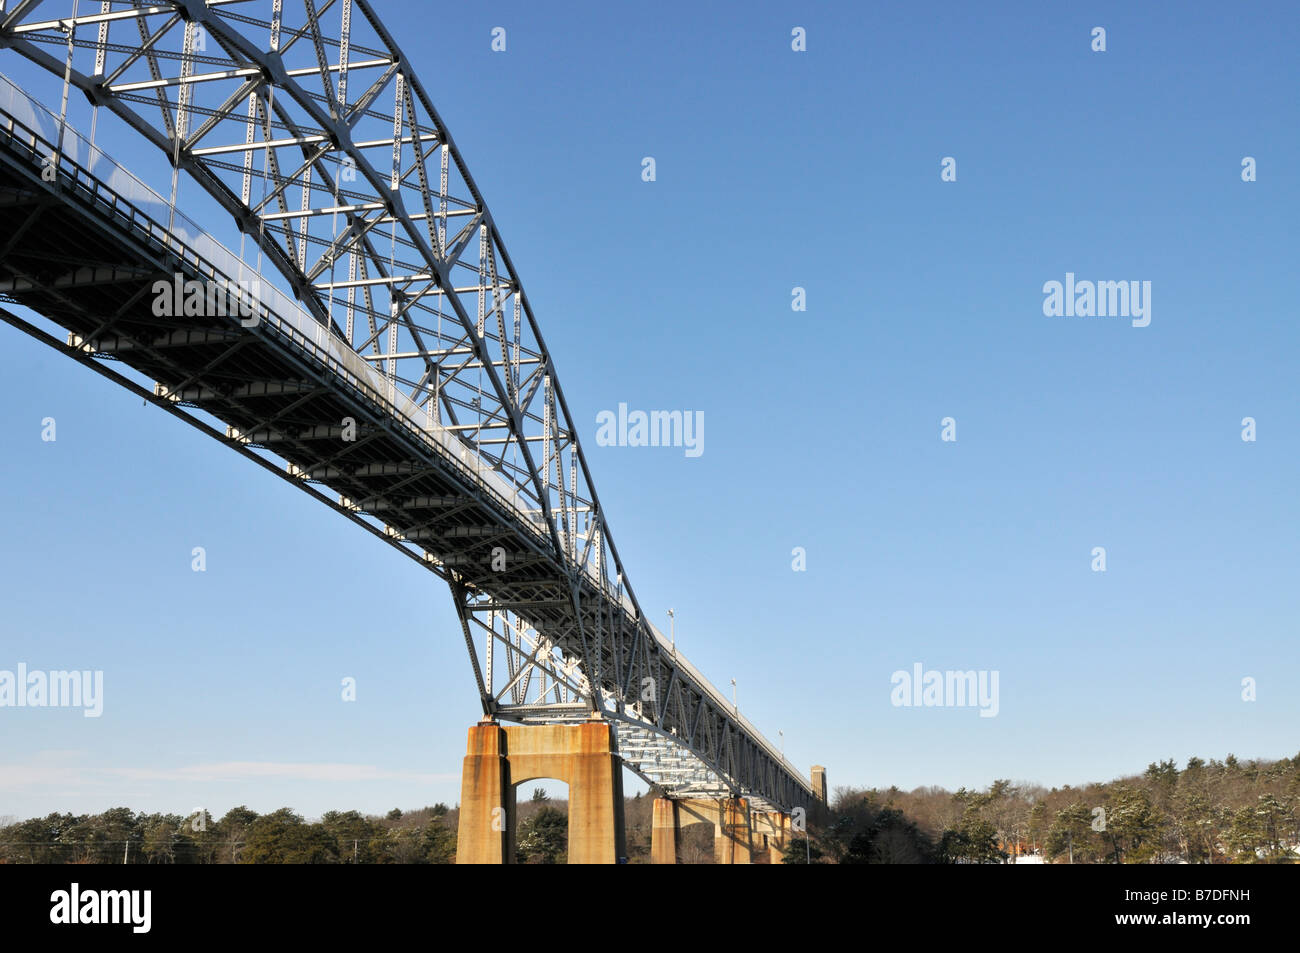 View of steel bridge from below showing beams angles concrete support trusses in a graphic abstract style Bourne - Stock Image